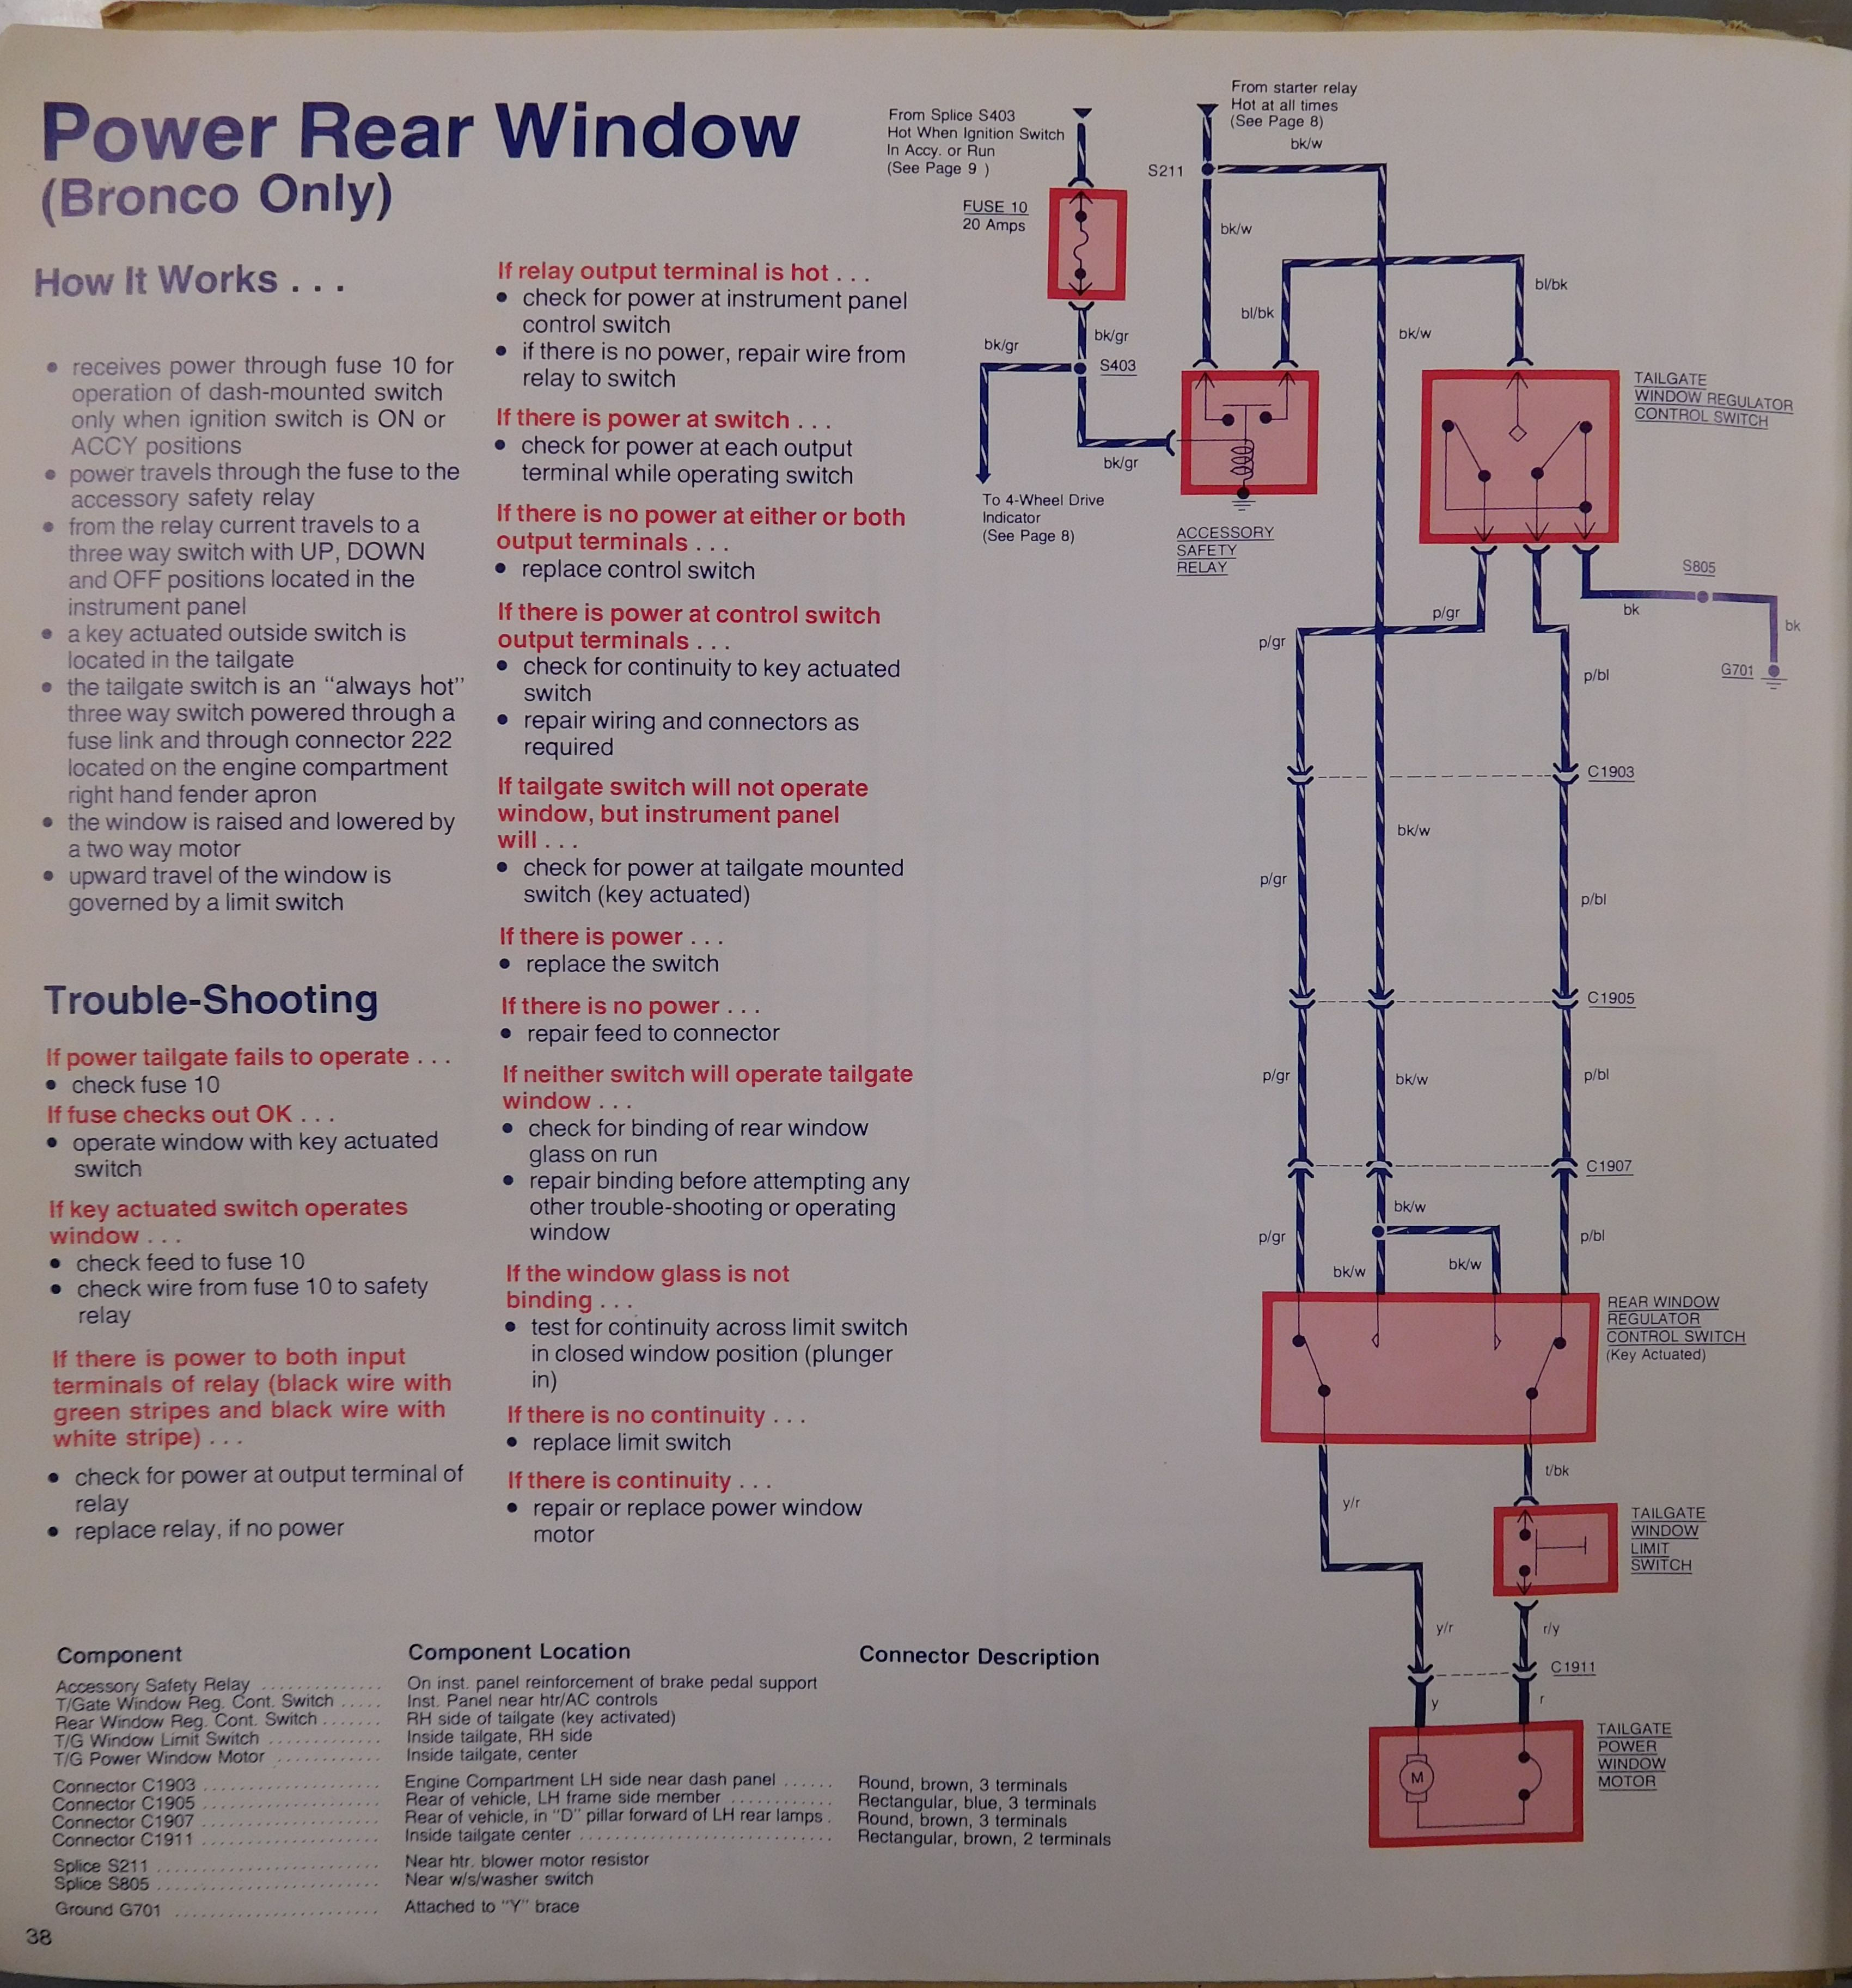 1979 ford rear window wire diagram 2004 mitsubishi endeavor rear window wiring diagram search results how to install replace tailgate handle ford ...